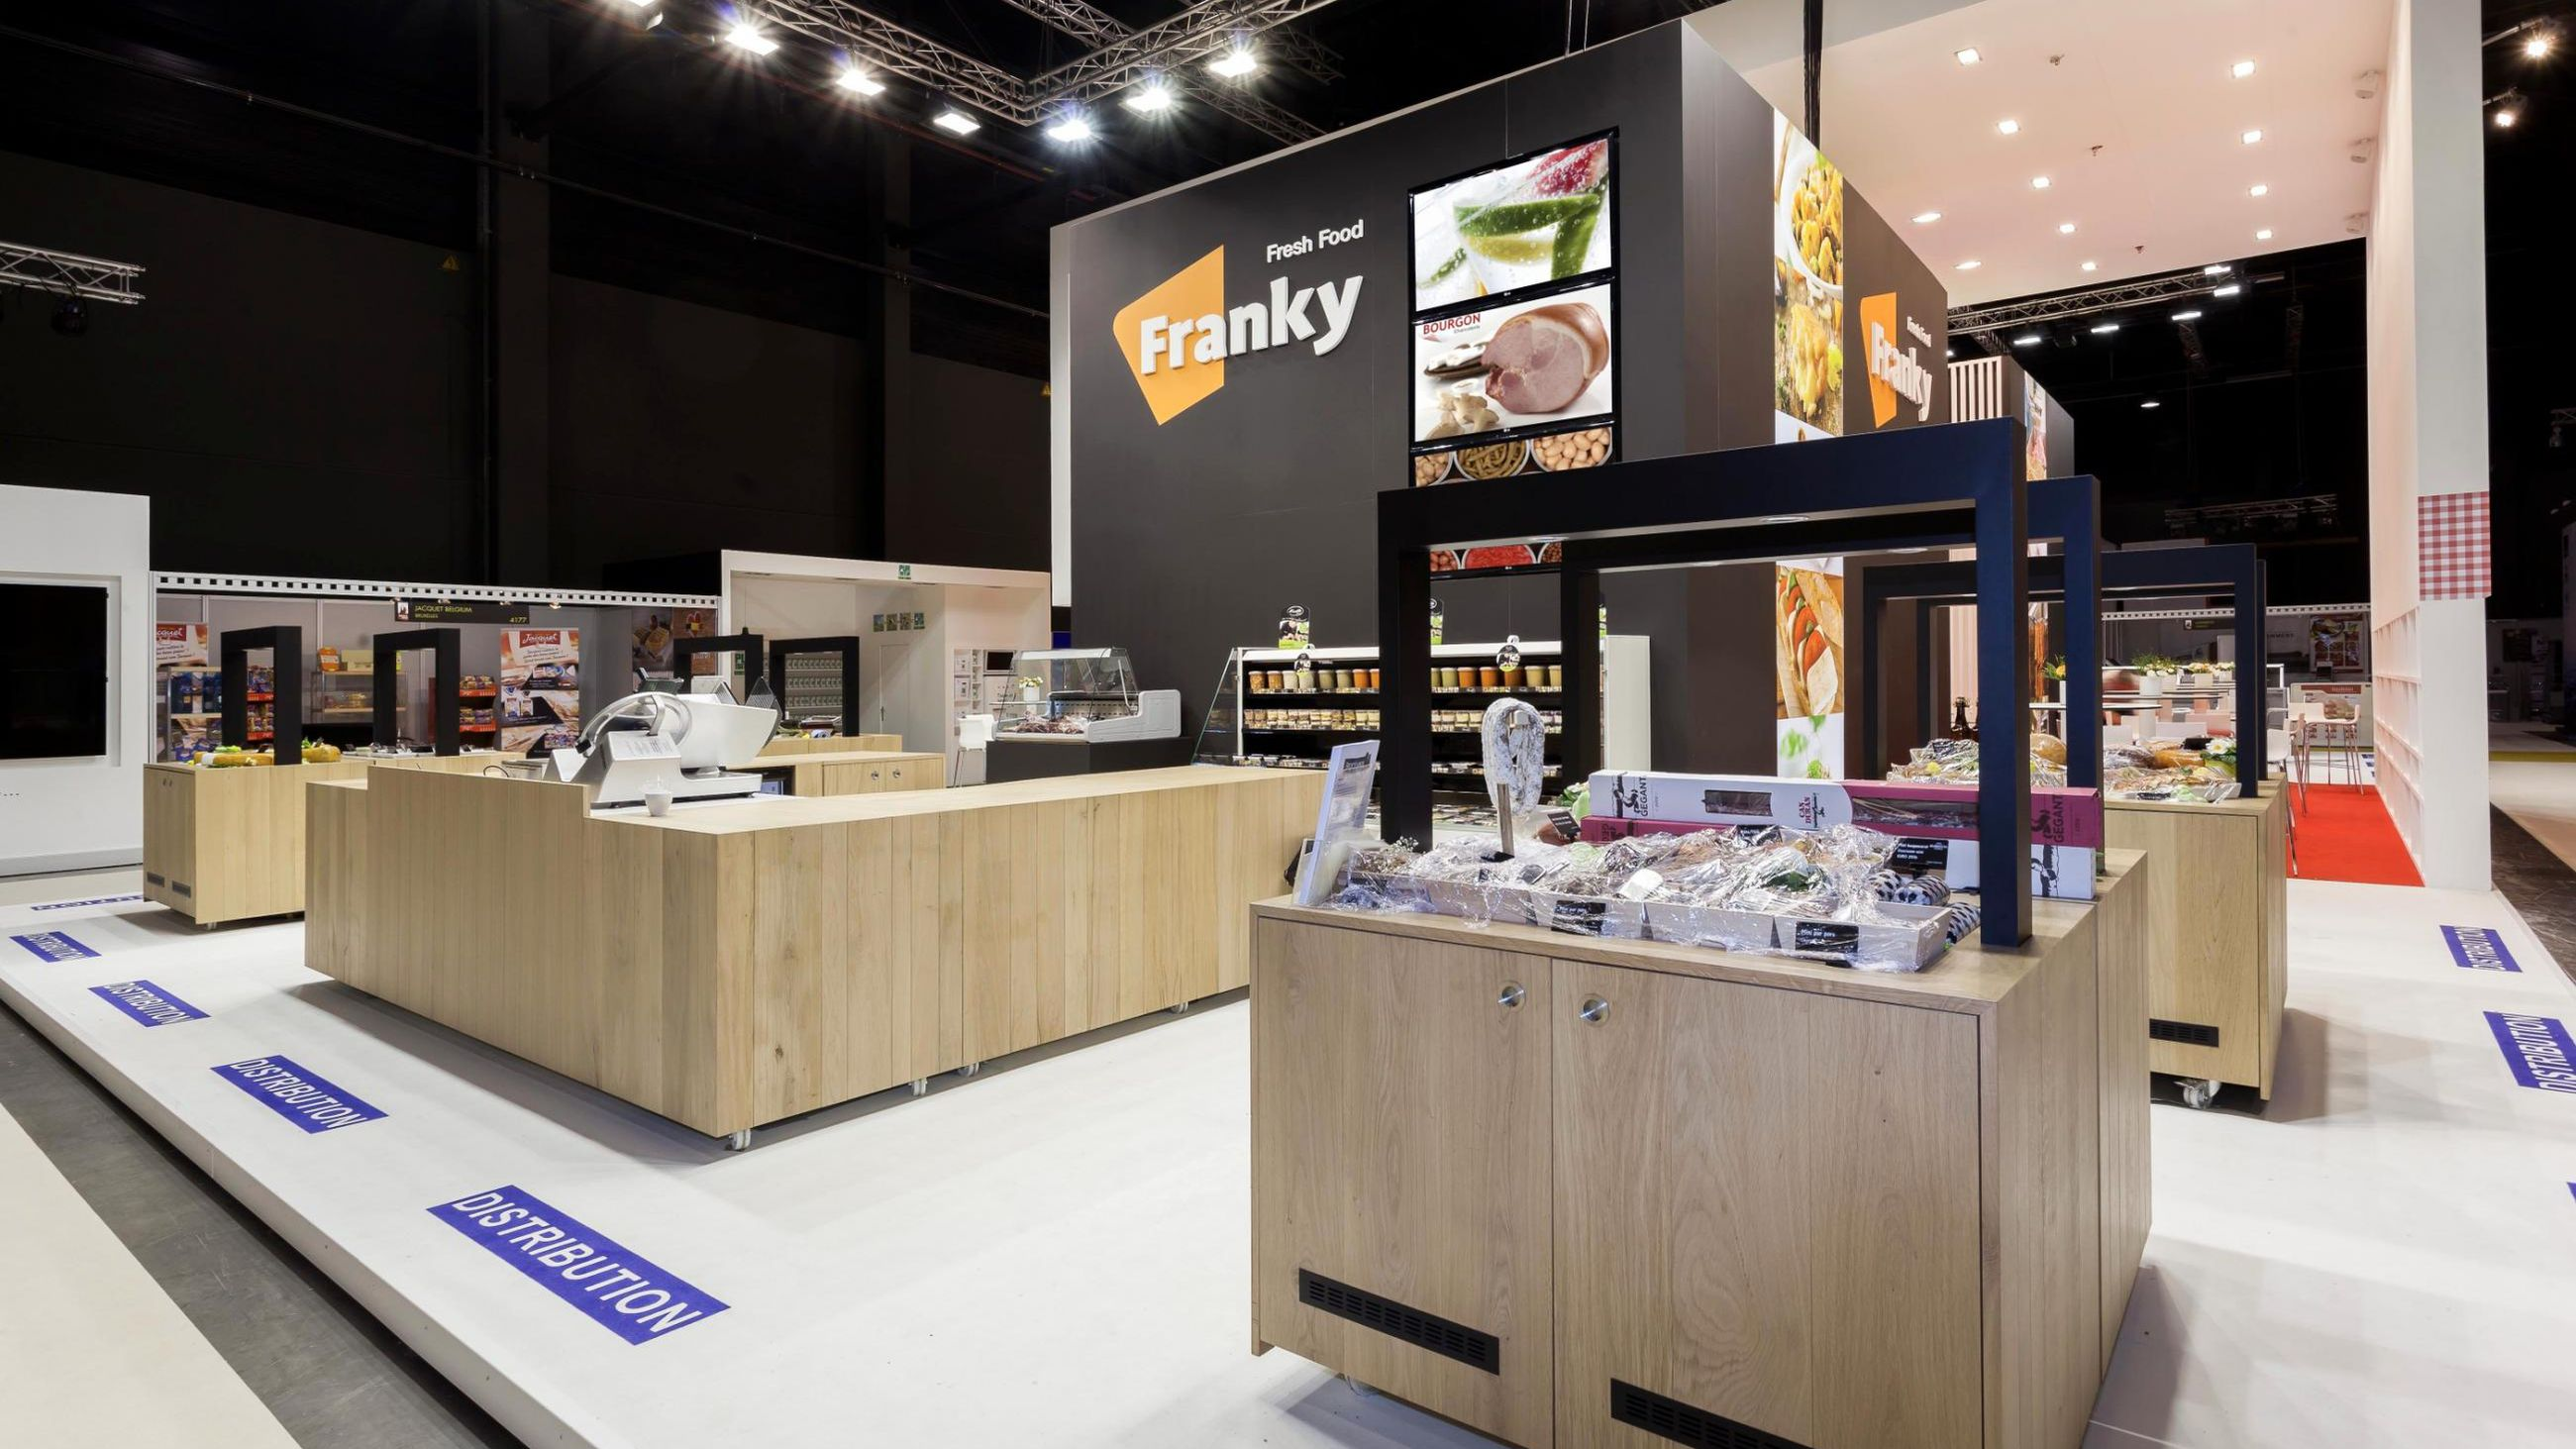 Franky Fresh Food - Willy Naessens - Standenbouw Guido Goethals